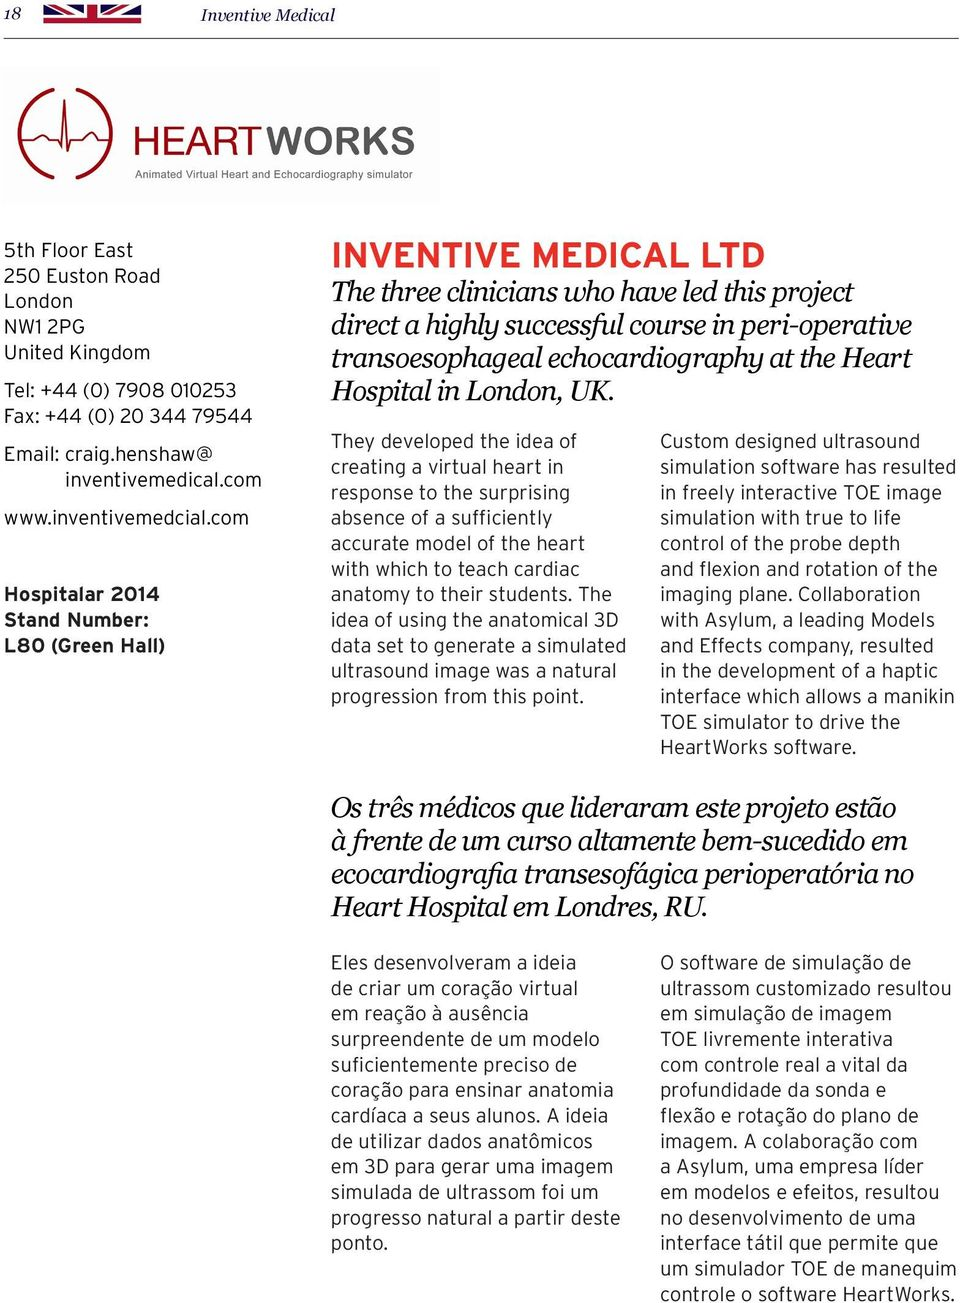 echocardiography at the Heart Hospital in London, UK.